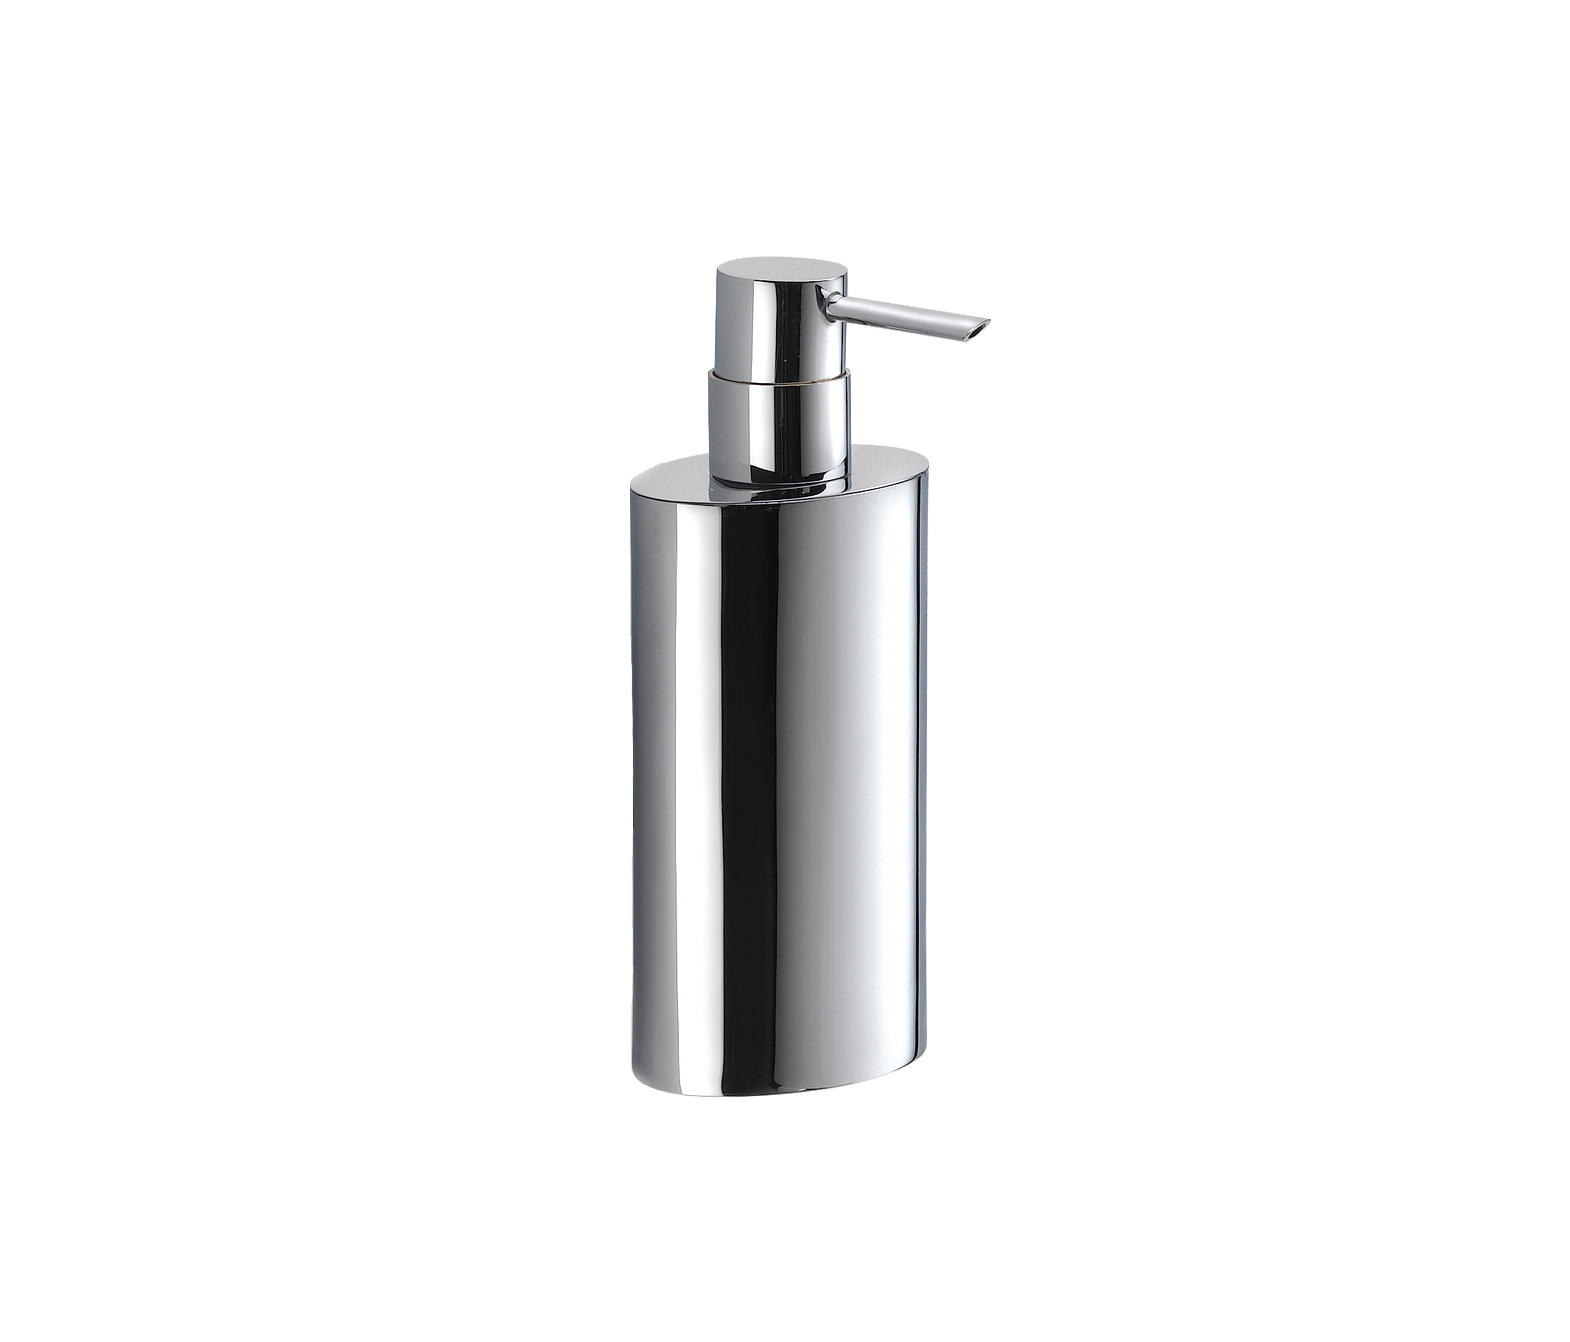 Mar Free Standing Soap Dispenser Soap Dispensers From Pomd Or Architonic